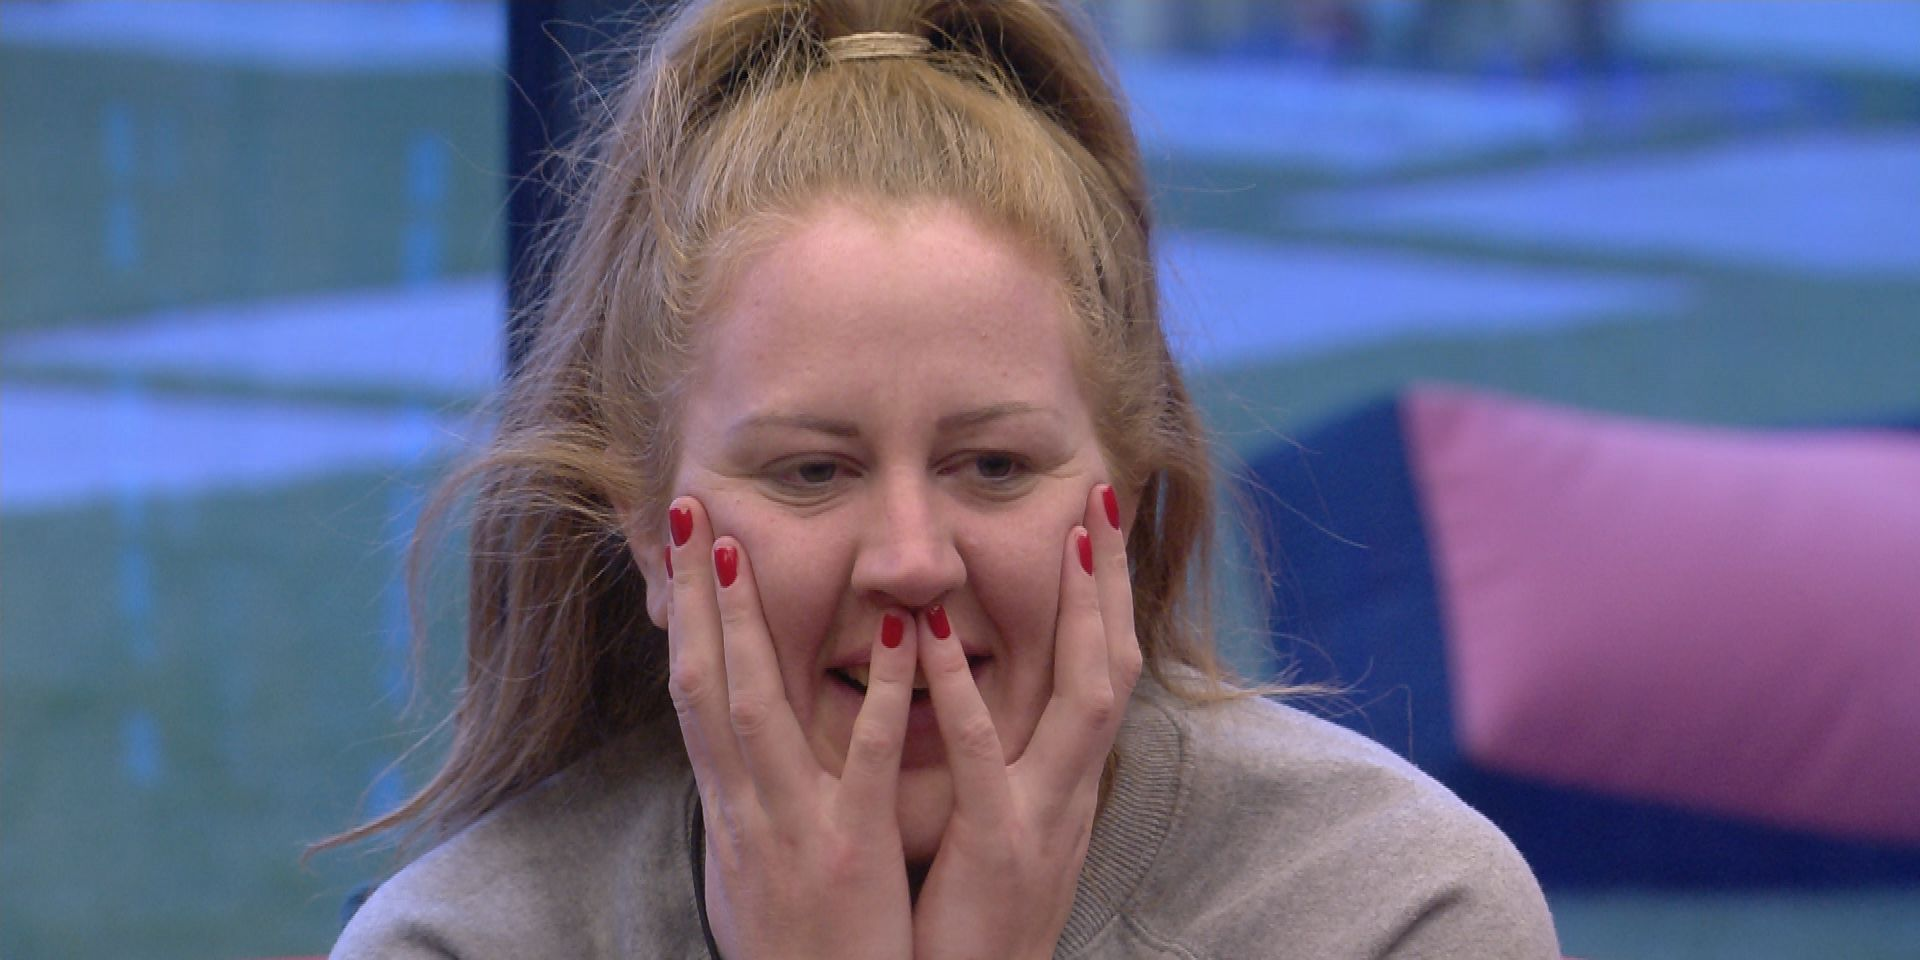 Big Brother Day 51: Zoe, shocked